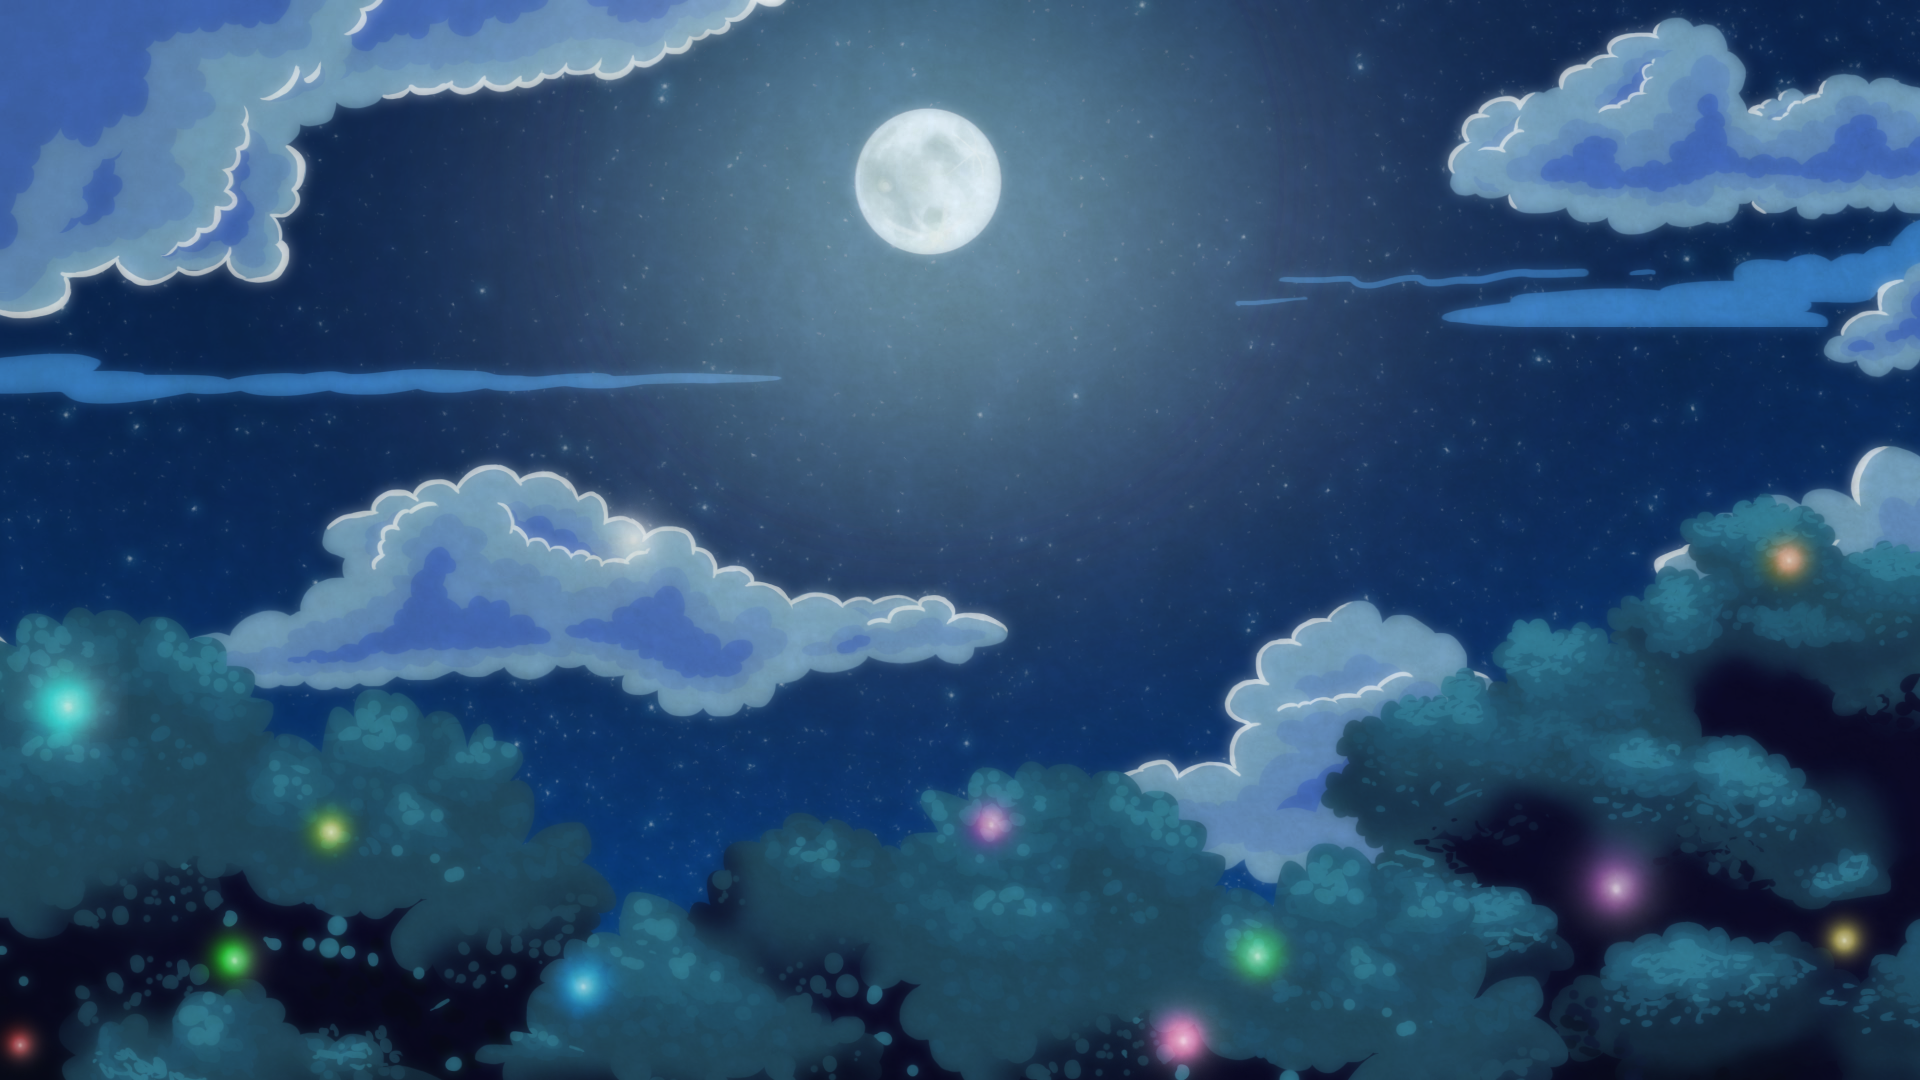 Anime Forest At Night Background Night forest by 1920x1080